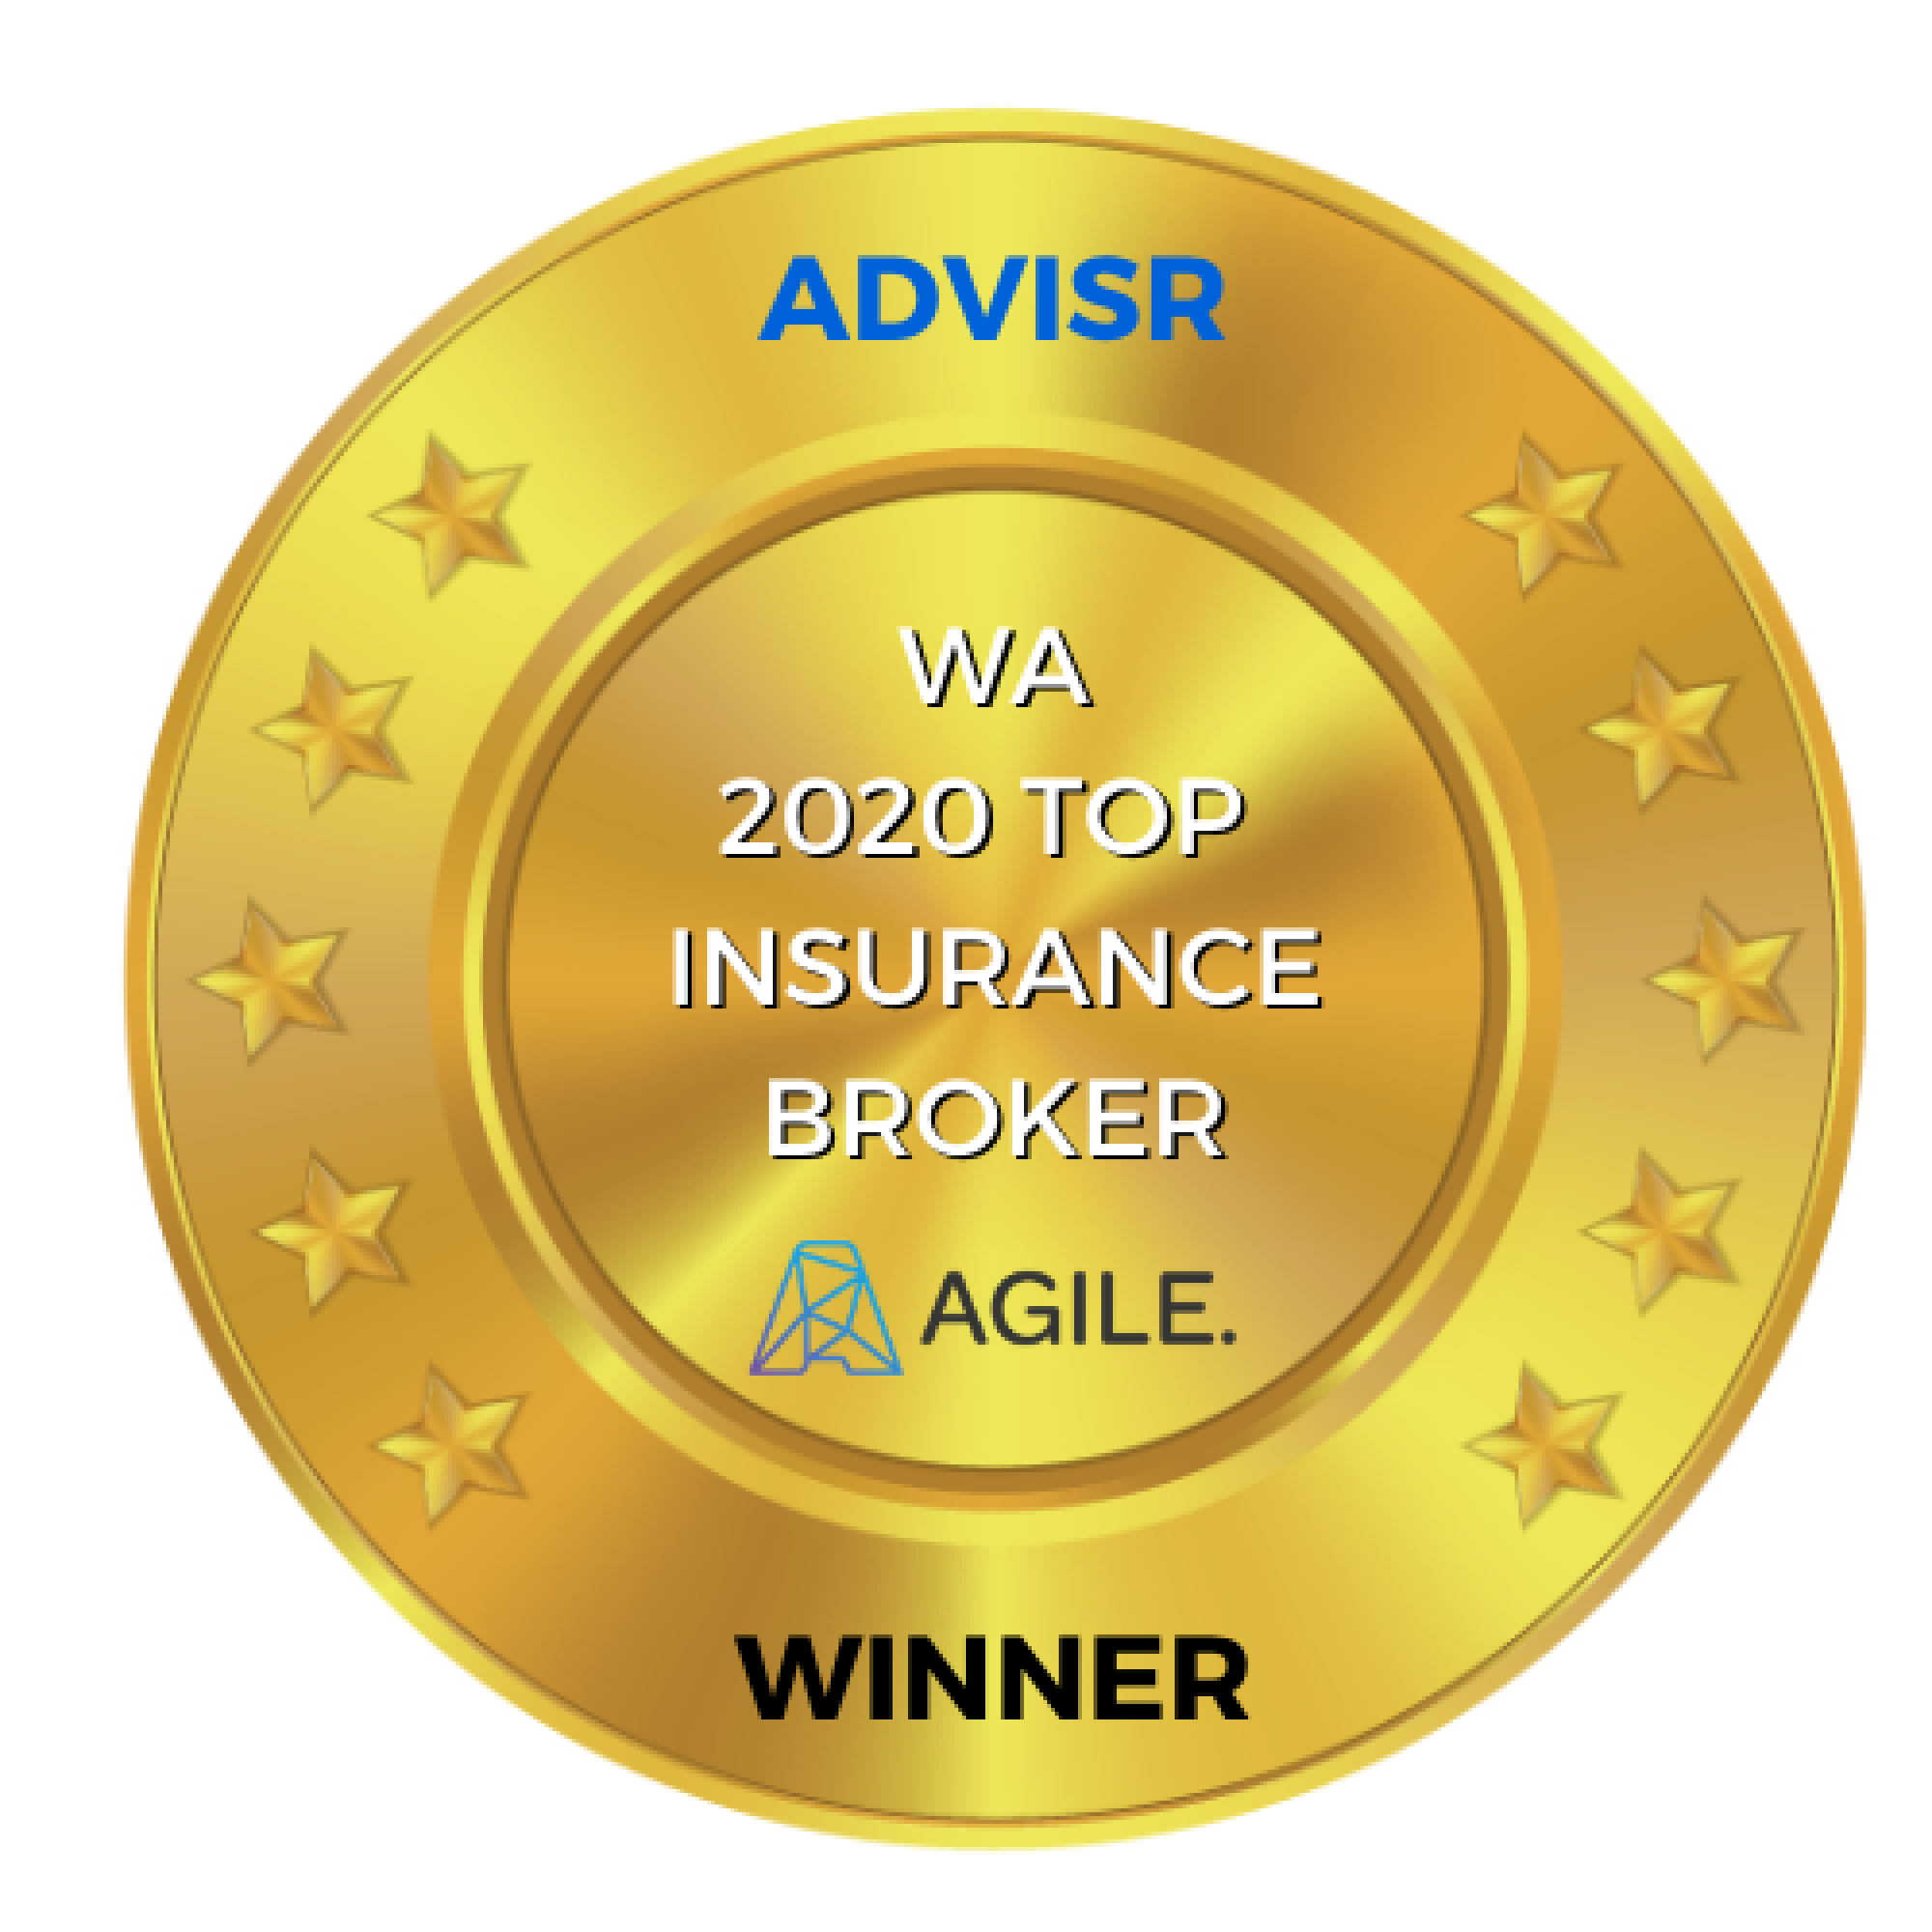 Advisr Insurance Broker Awards 2020 Winner | Western Australia Top Insurance Broker